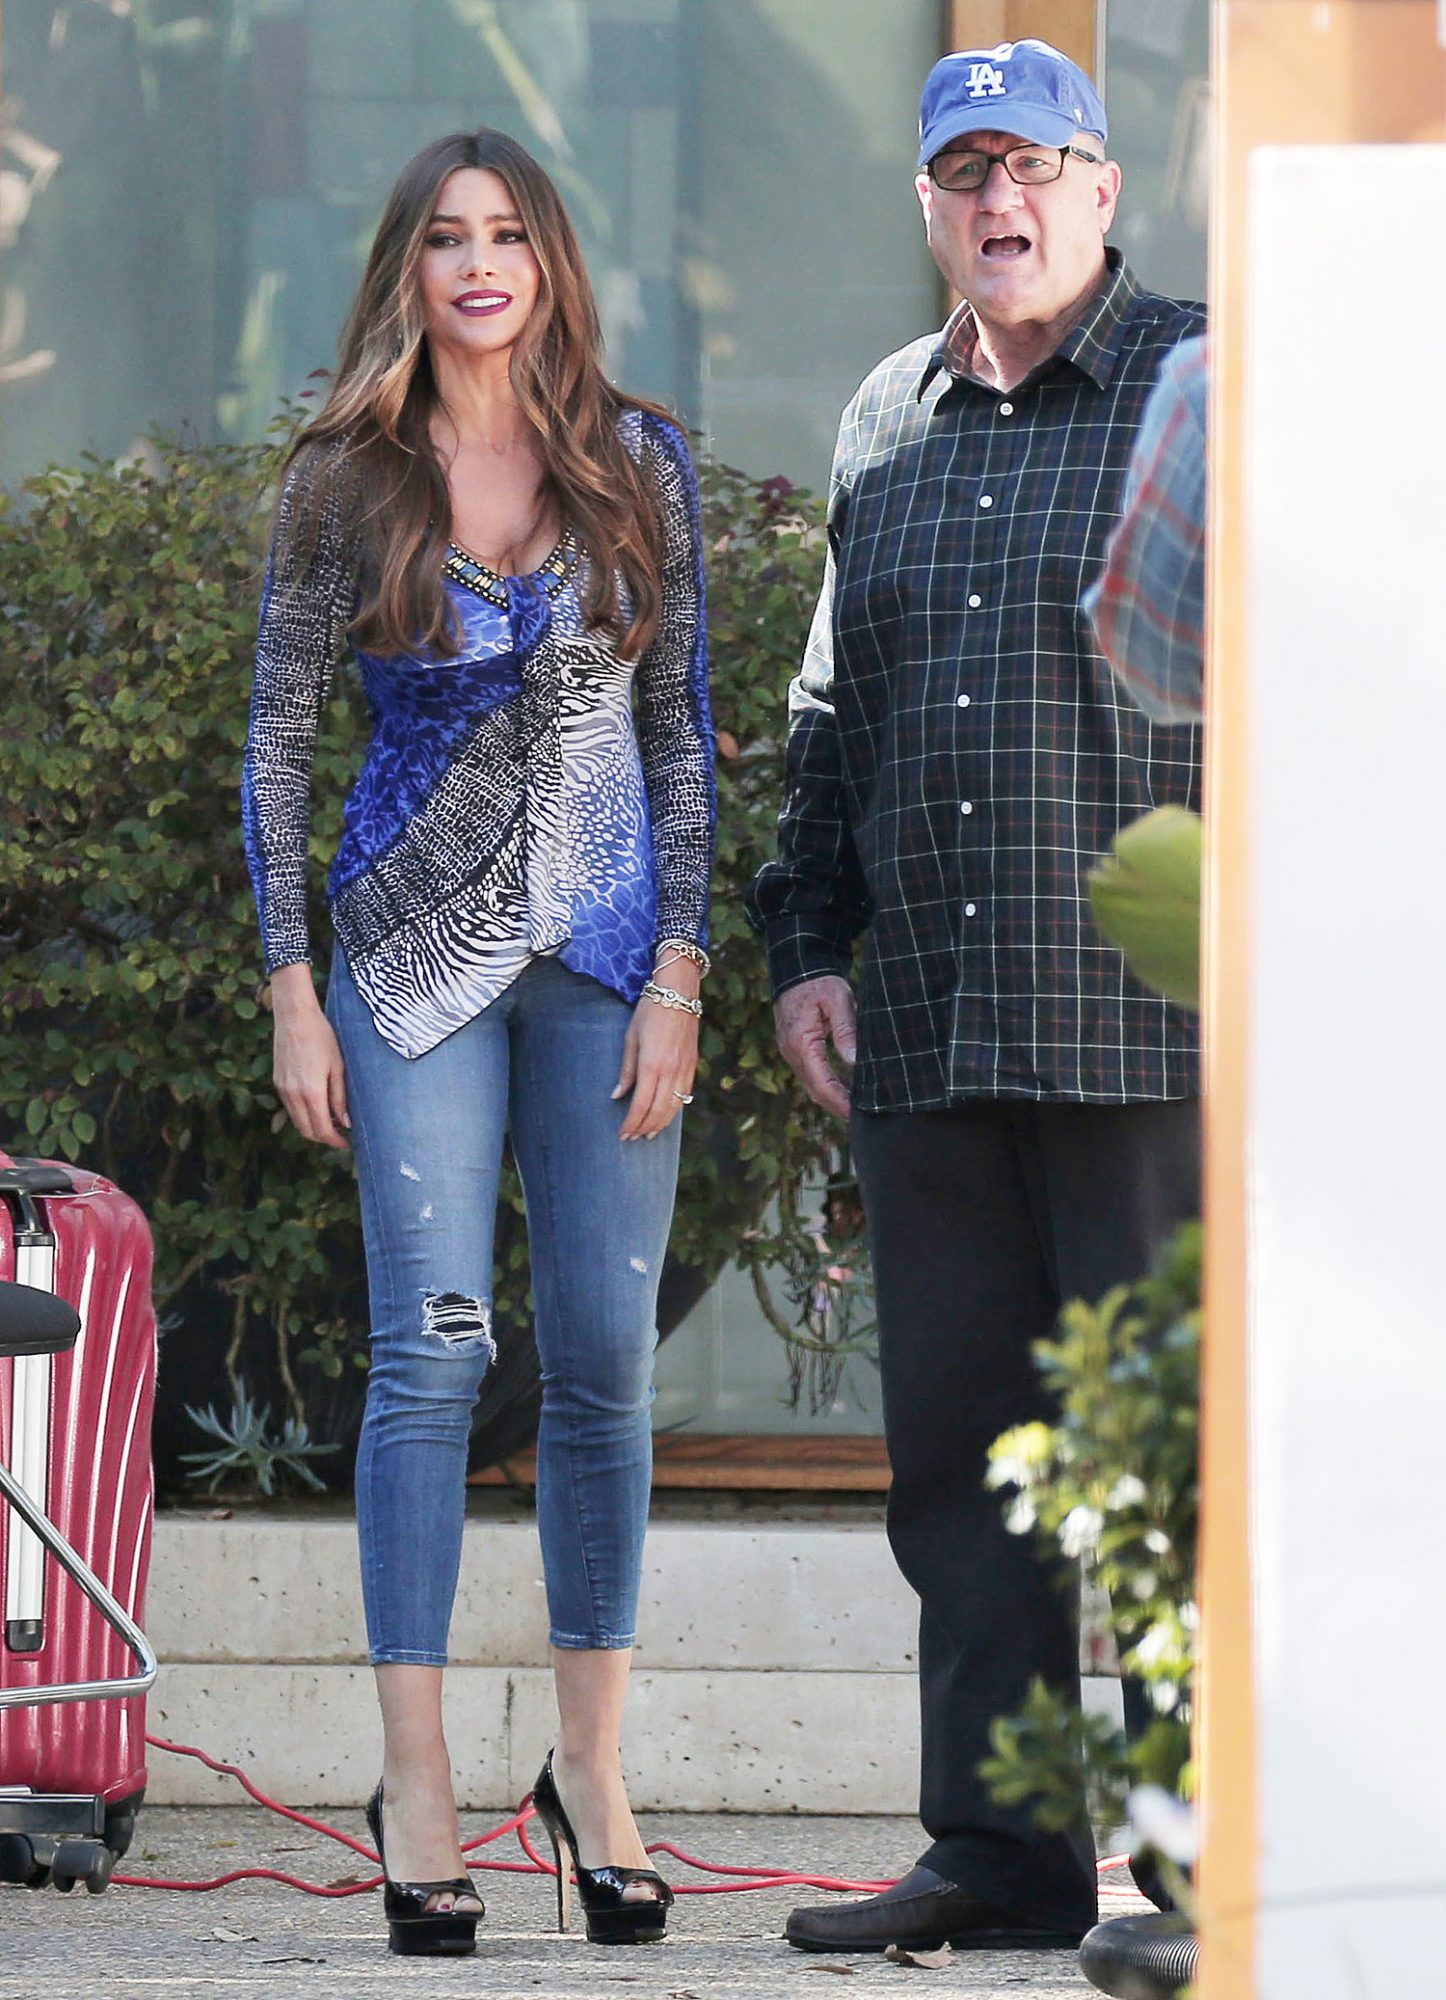 EXCLUSIVE: Sofia Vergara gets into character for yet another funny scene with on screen husband Ed O'Neill for hit TV show 'Modern Family'